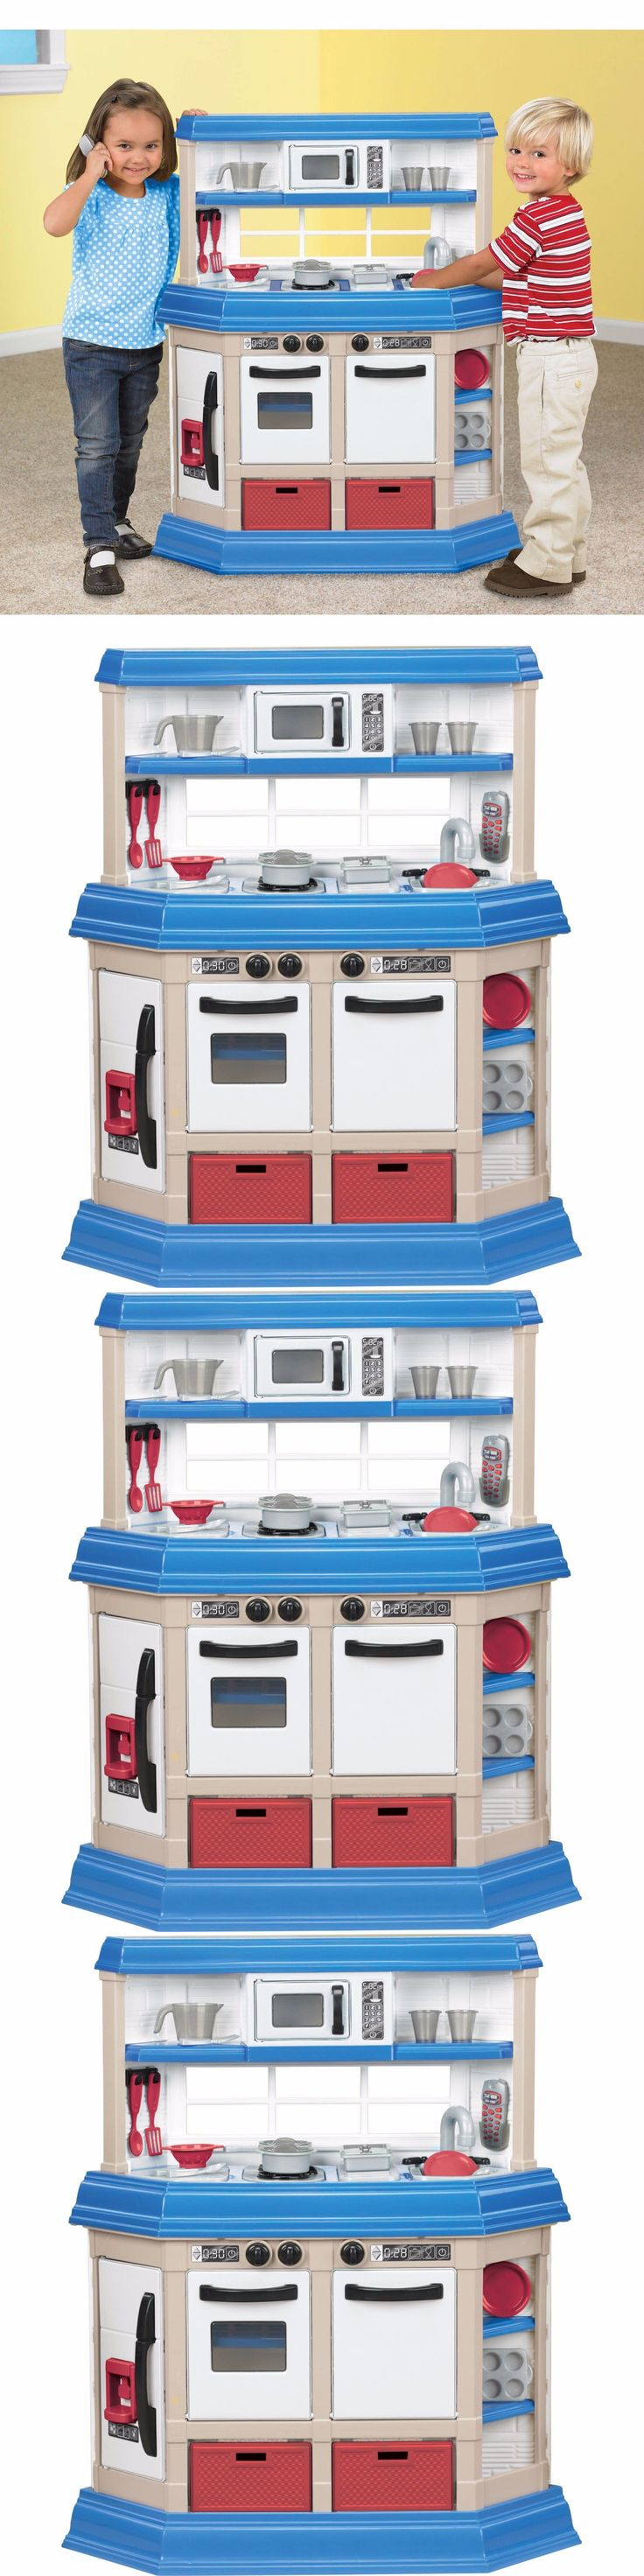 Kitchens 158746: Play Kitchen Set Playset Kids Pretend Toy Toys Cooking Station Game Plastic New -> BUY IT NOW ONLY: $61.7 on eBay!